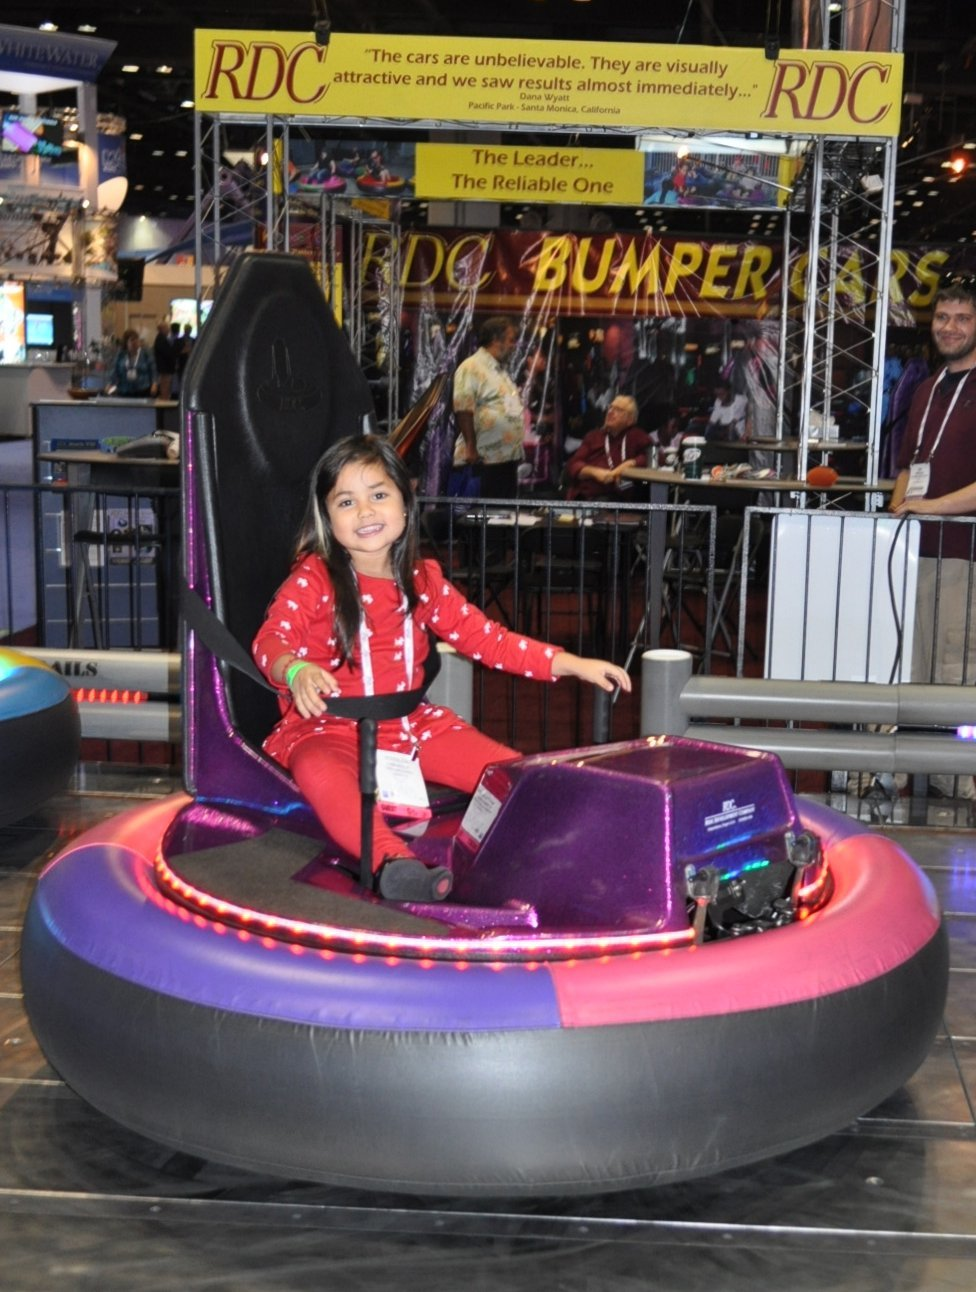 Ride Development Company (RDC) Introduces New LED Bumper Cars